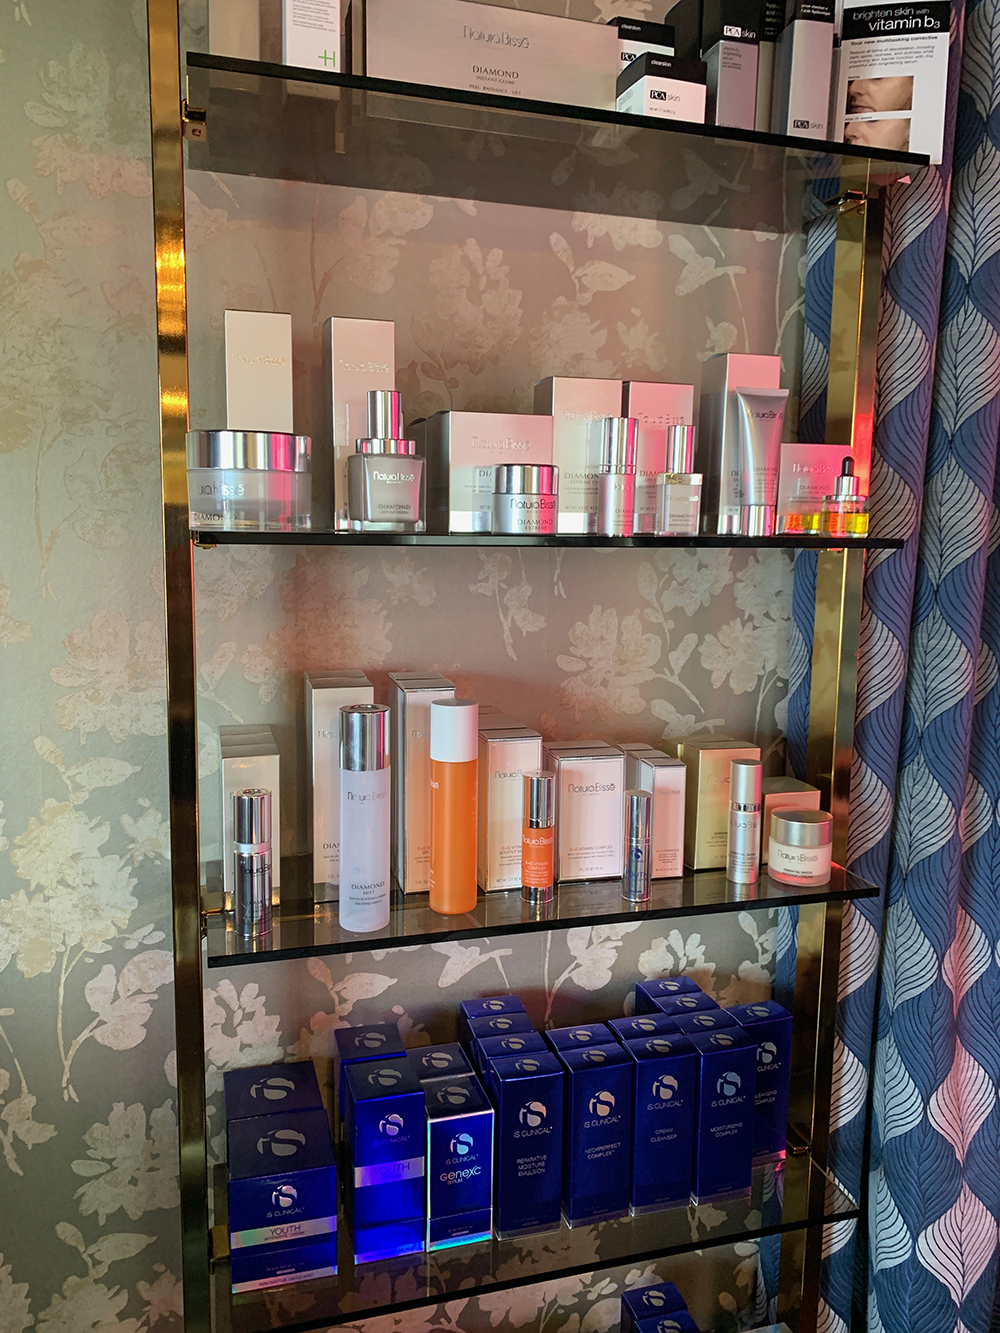 The spa's retail area carries several renowned skincare brands.